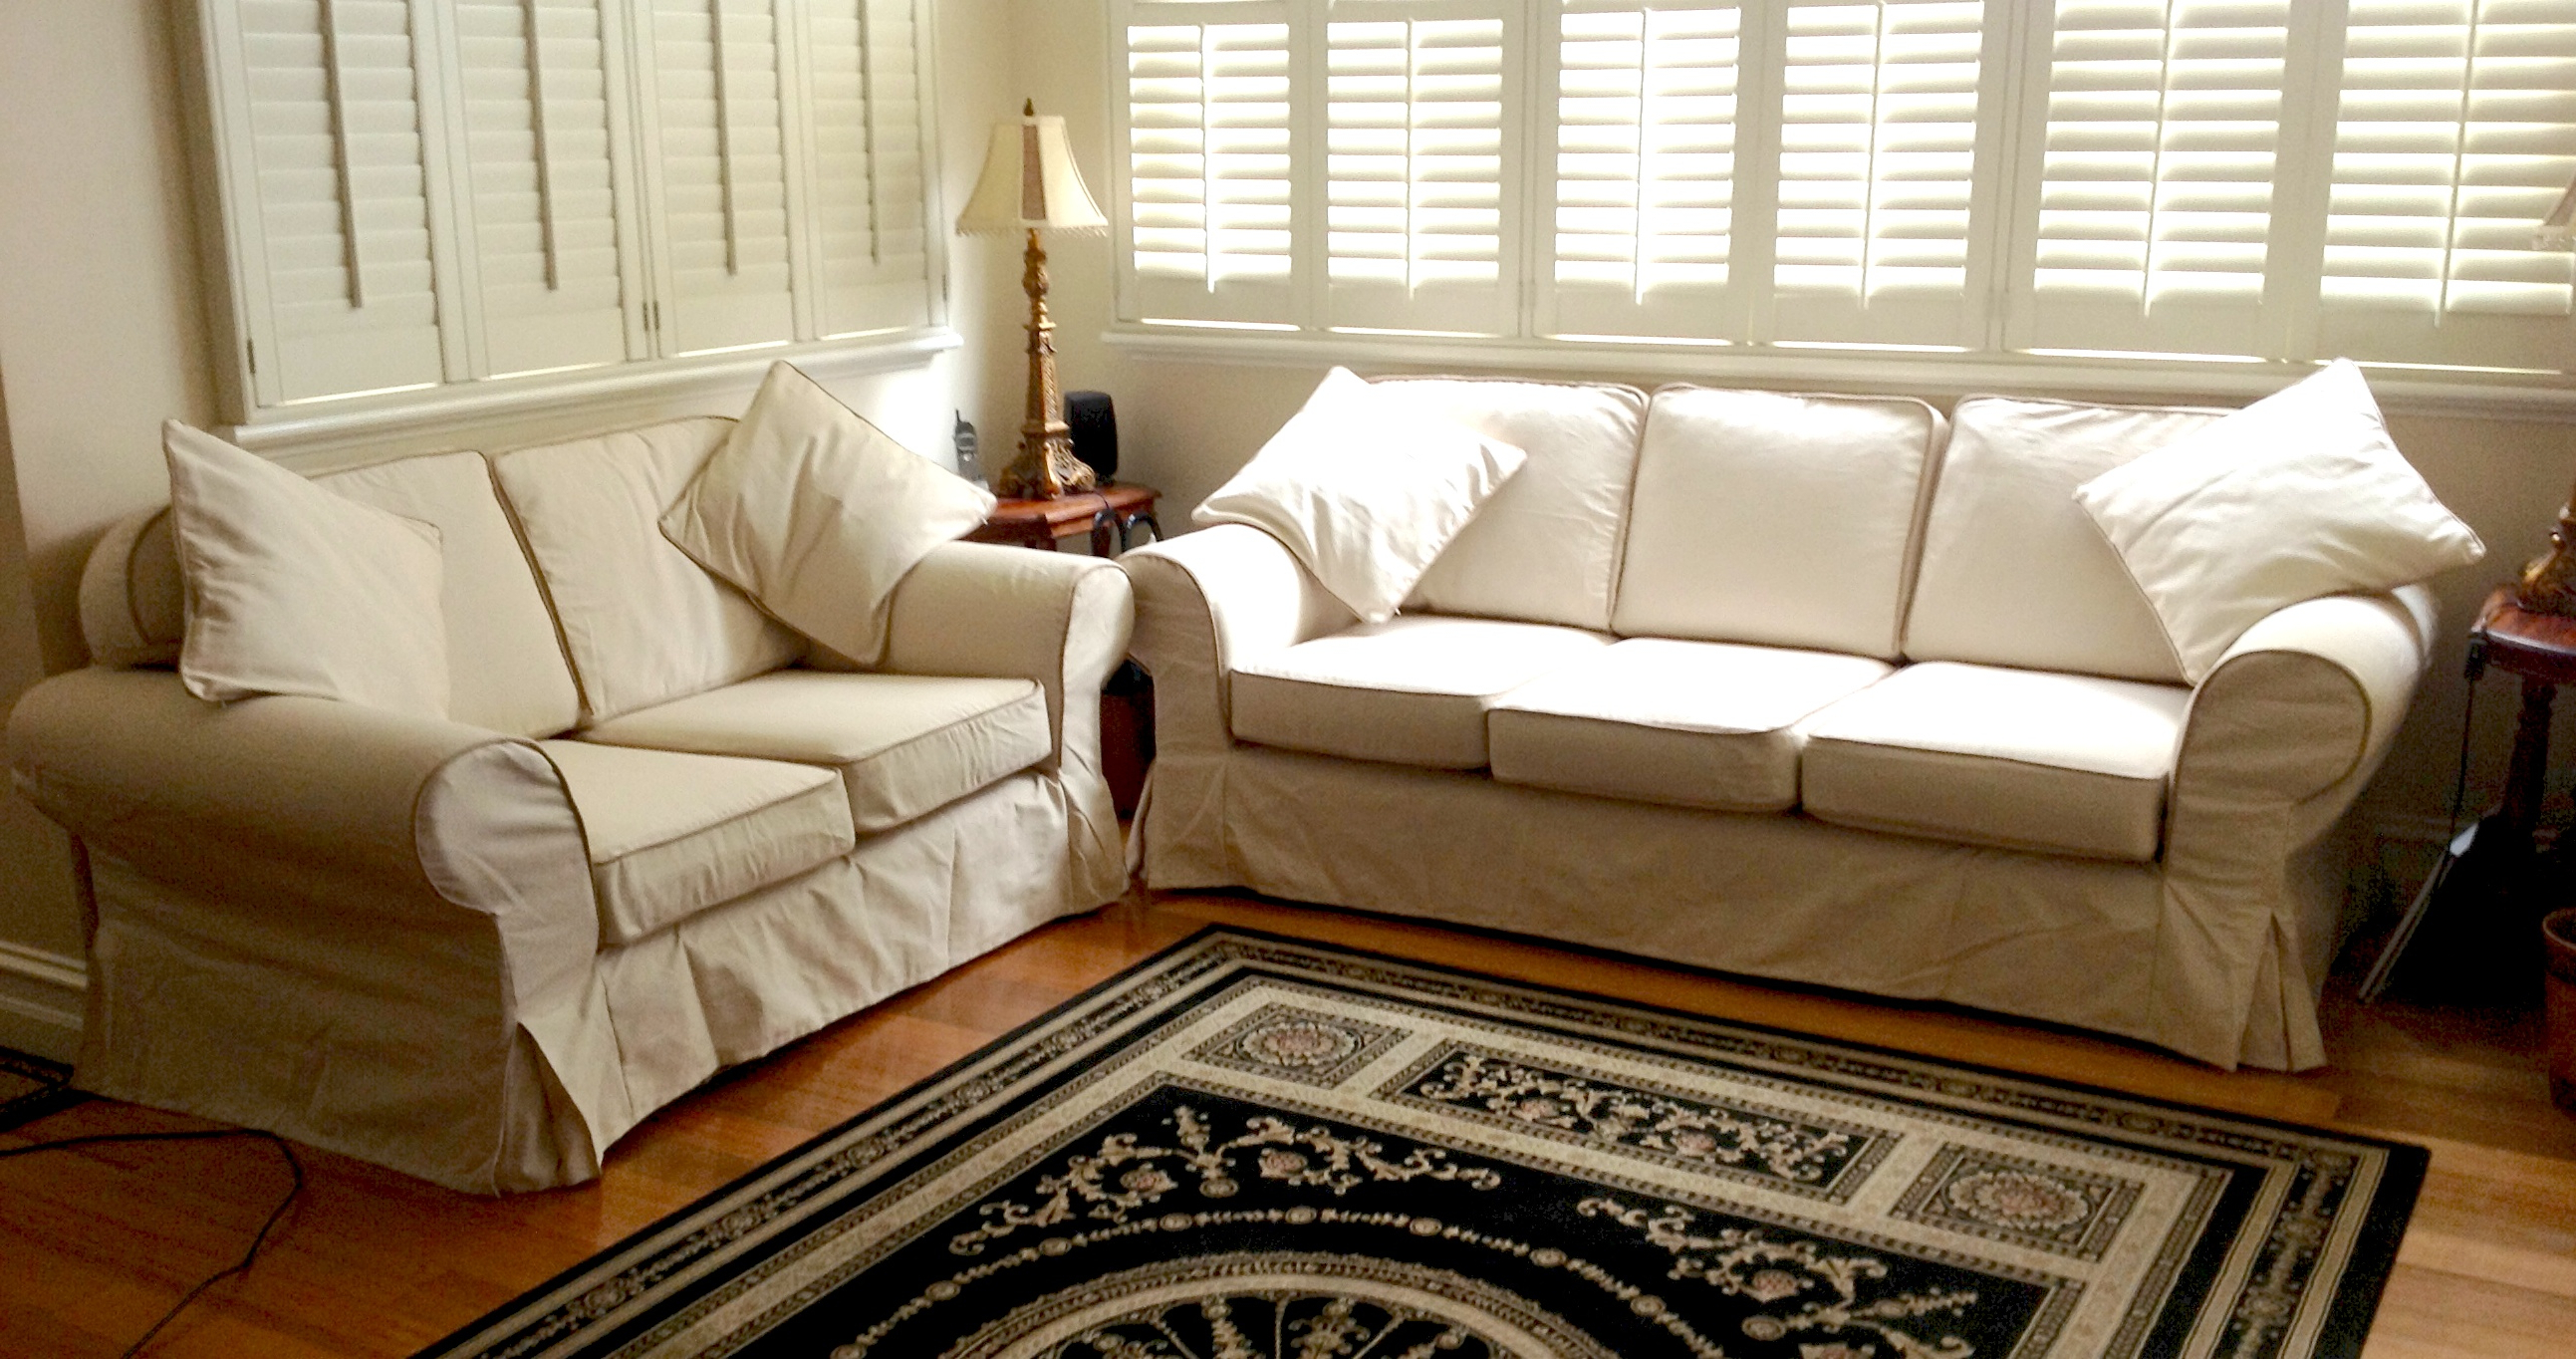 Latest Slipcovers For Sofas And Chairs For Custom Slipcovers And Couch Cover For Any Sofa Online (View 8 of 20)